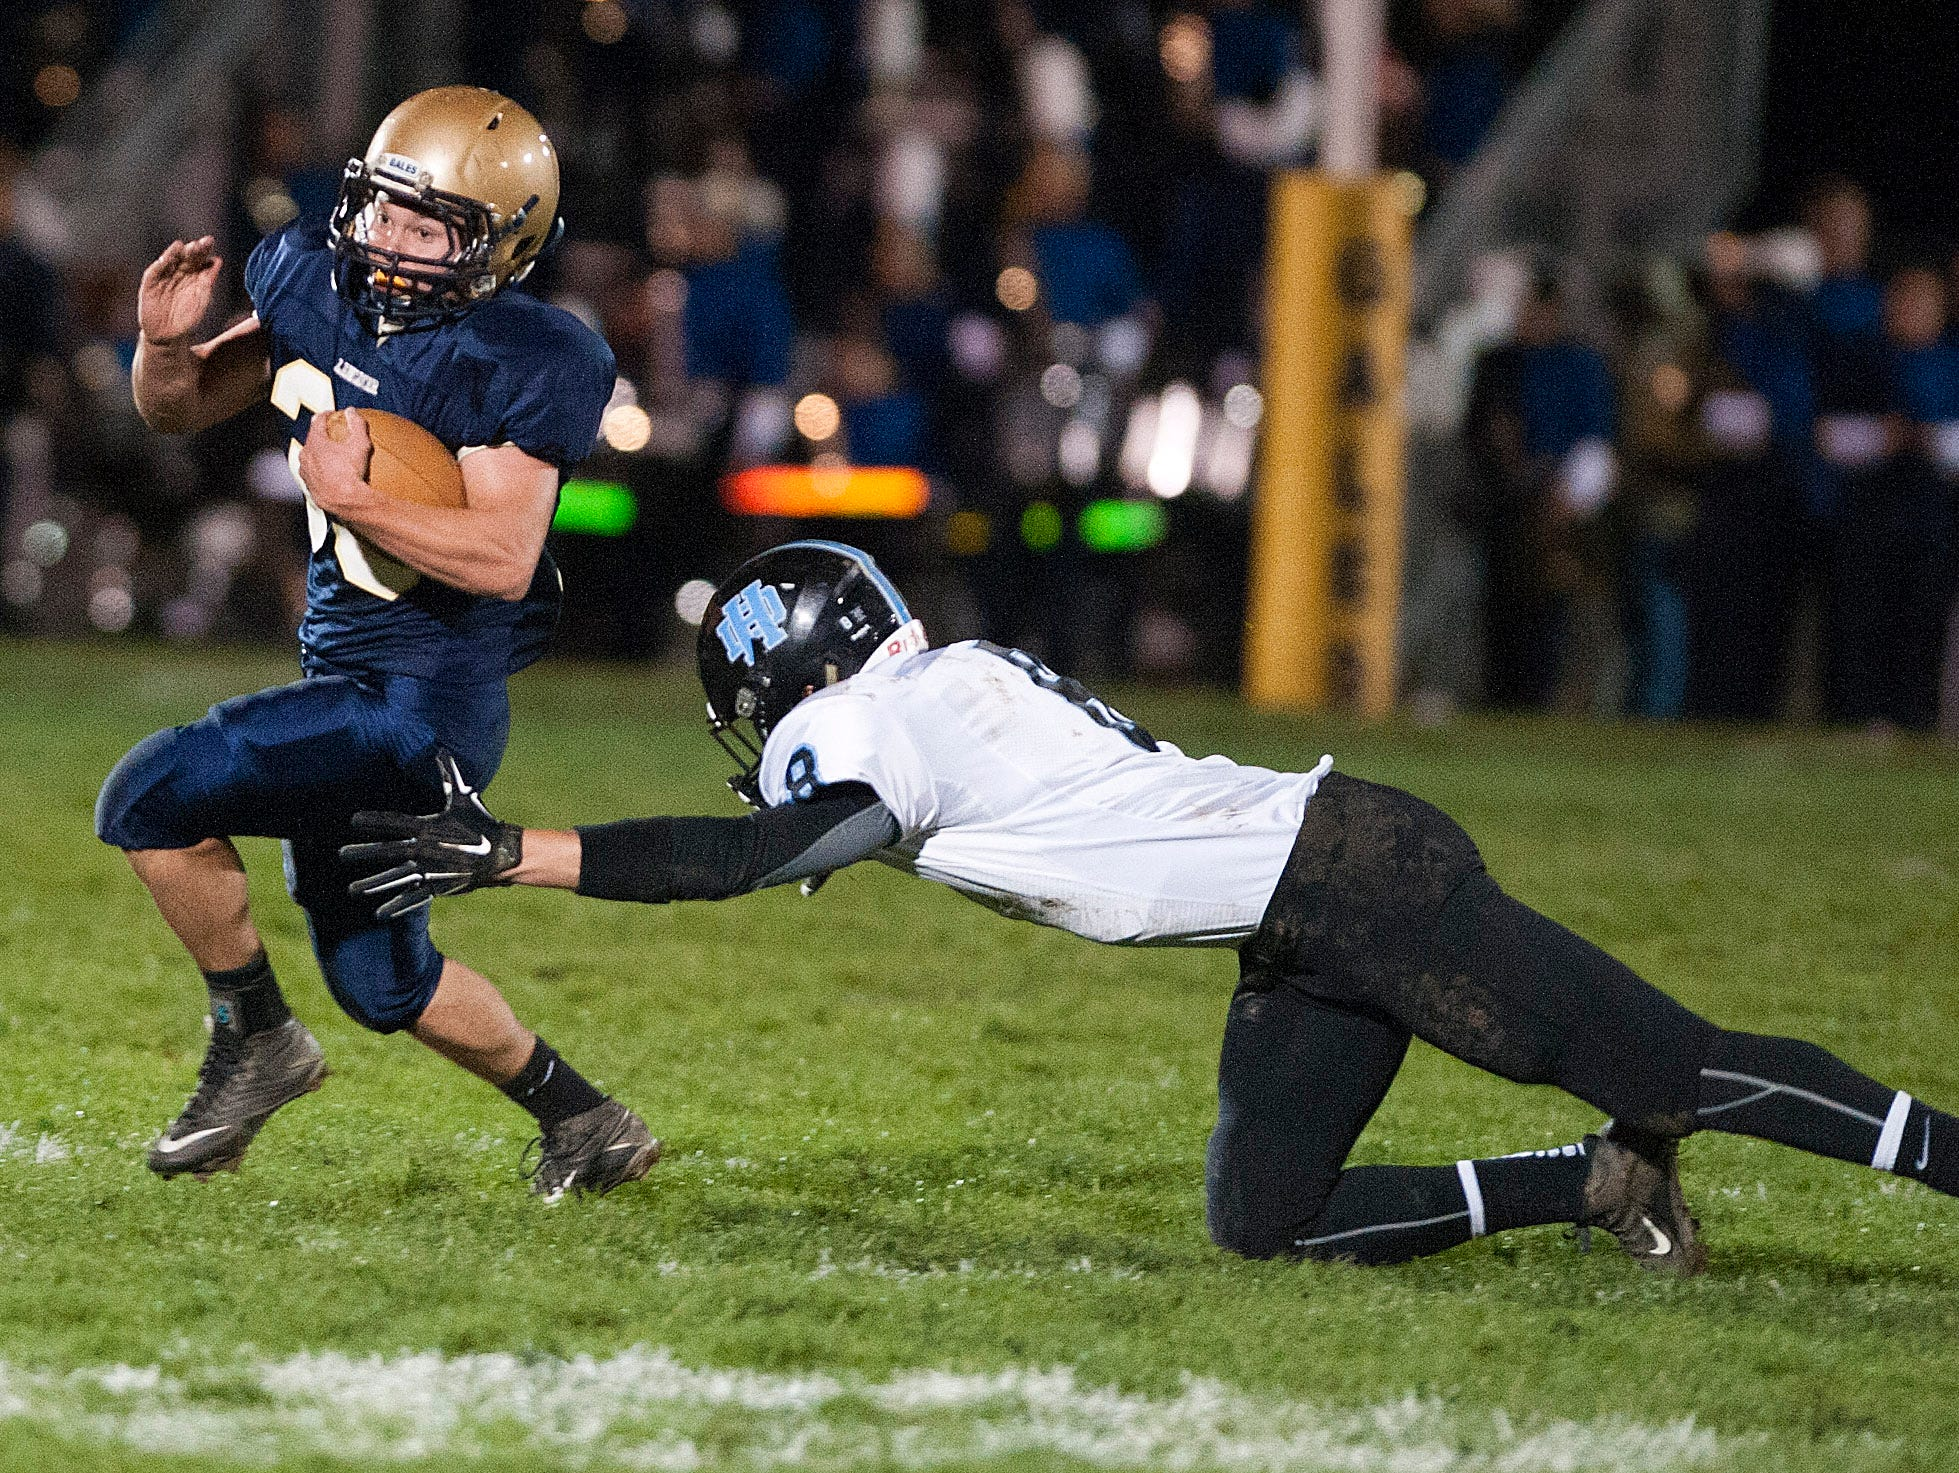 Lancaster's Tyler Carter dodges an attempted tackle by a Hilliard Darby defender during Saturday night's game at Fulton Field in Lancaster.